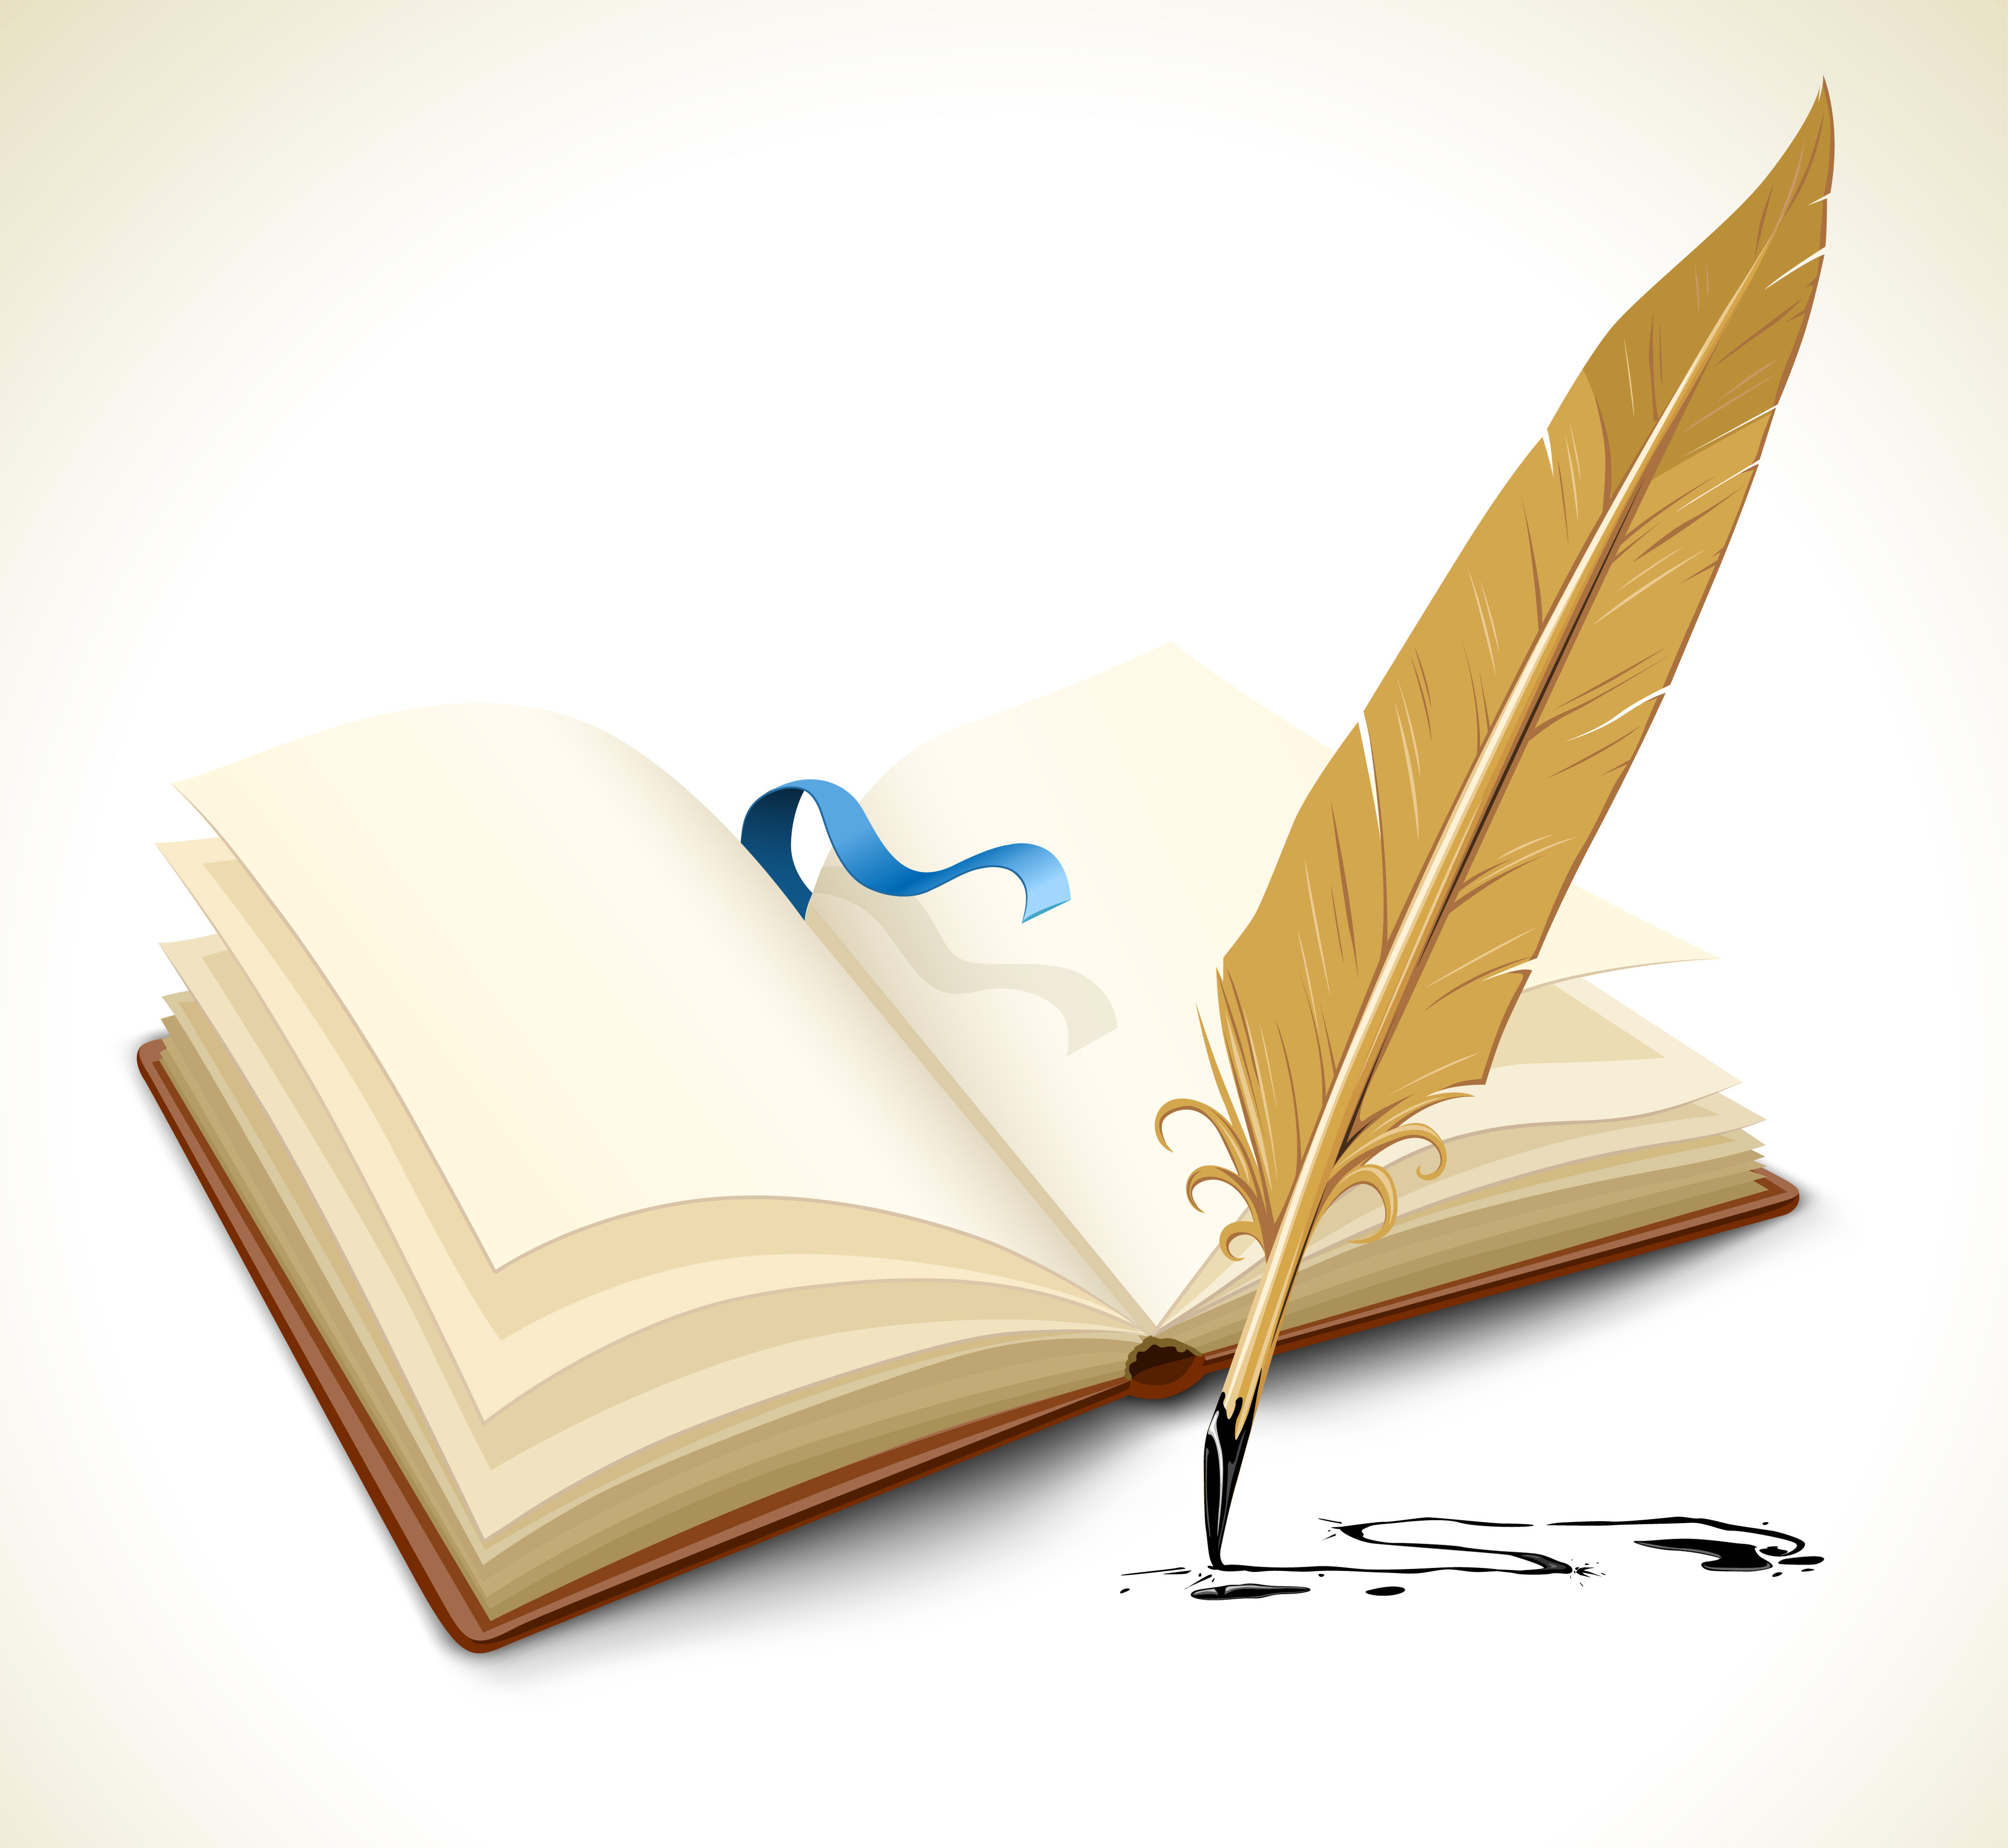 Best options for self publishing a book